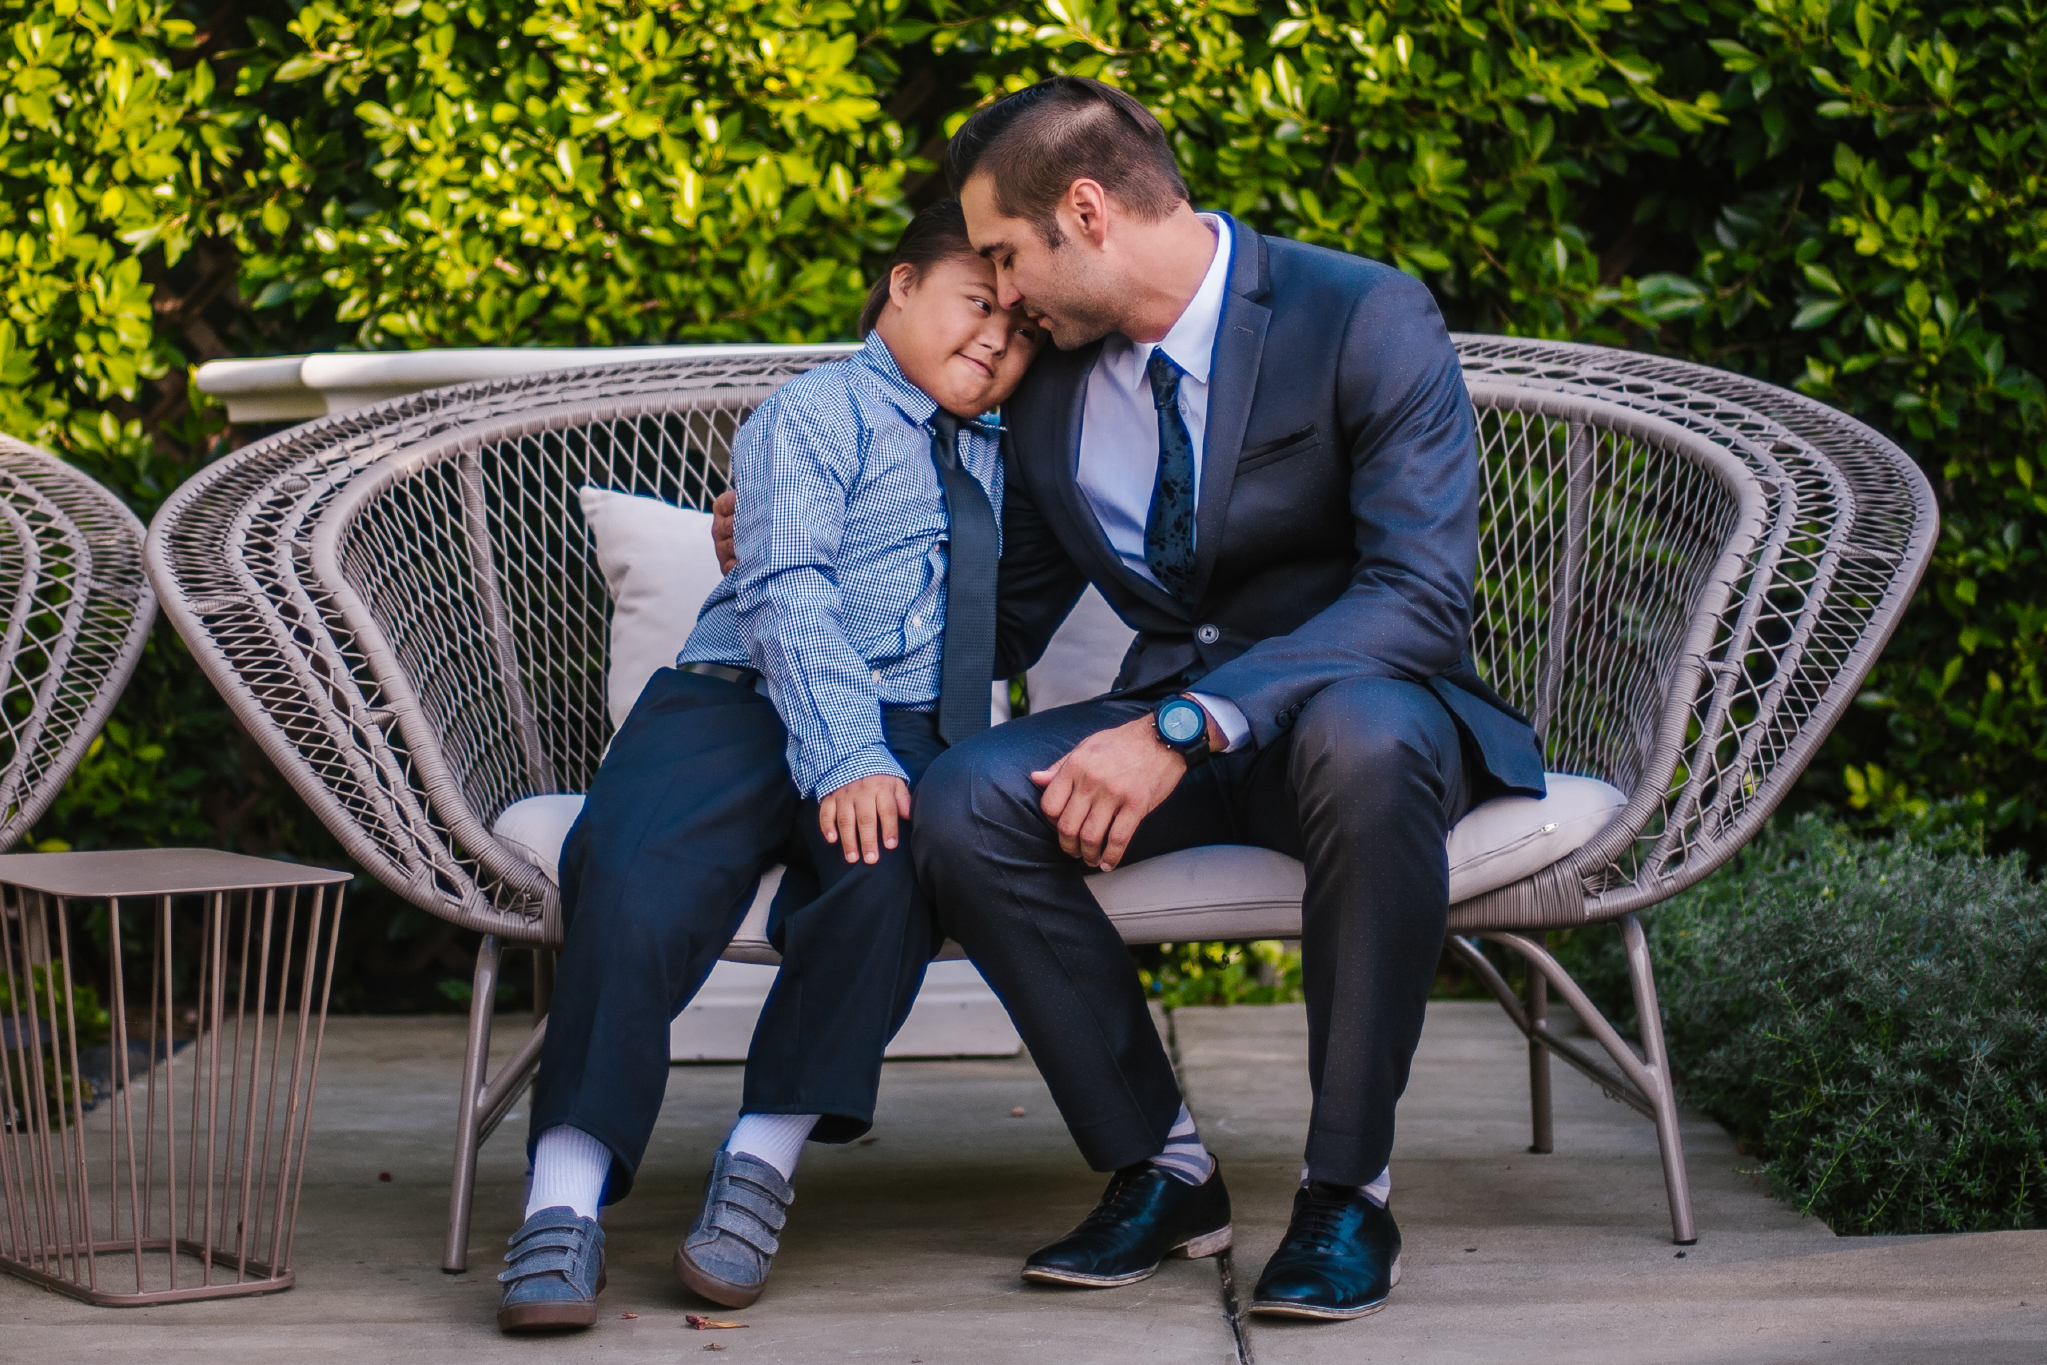 san diego wedding   photographer | kid and groom sitting together on big chair